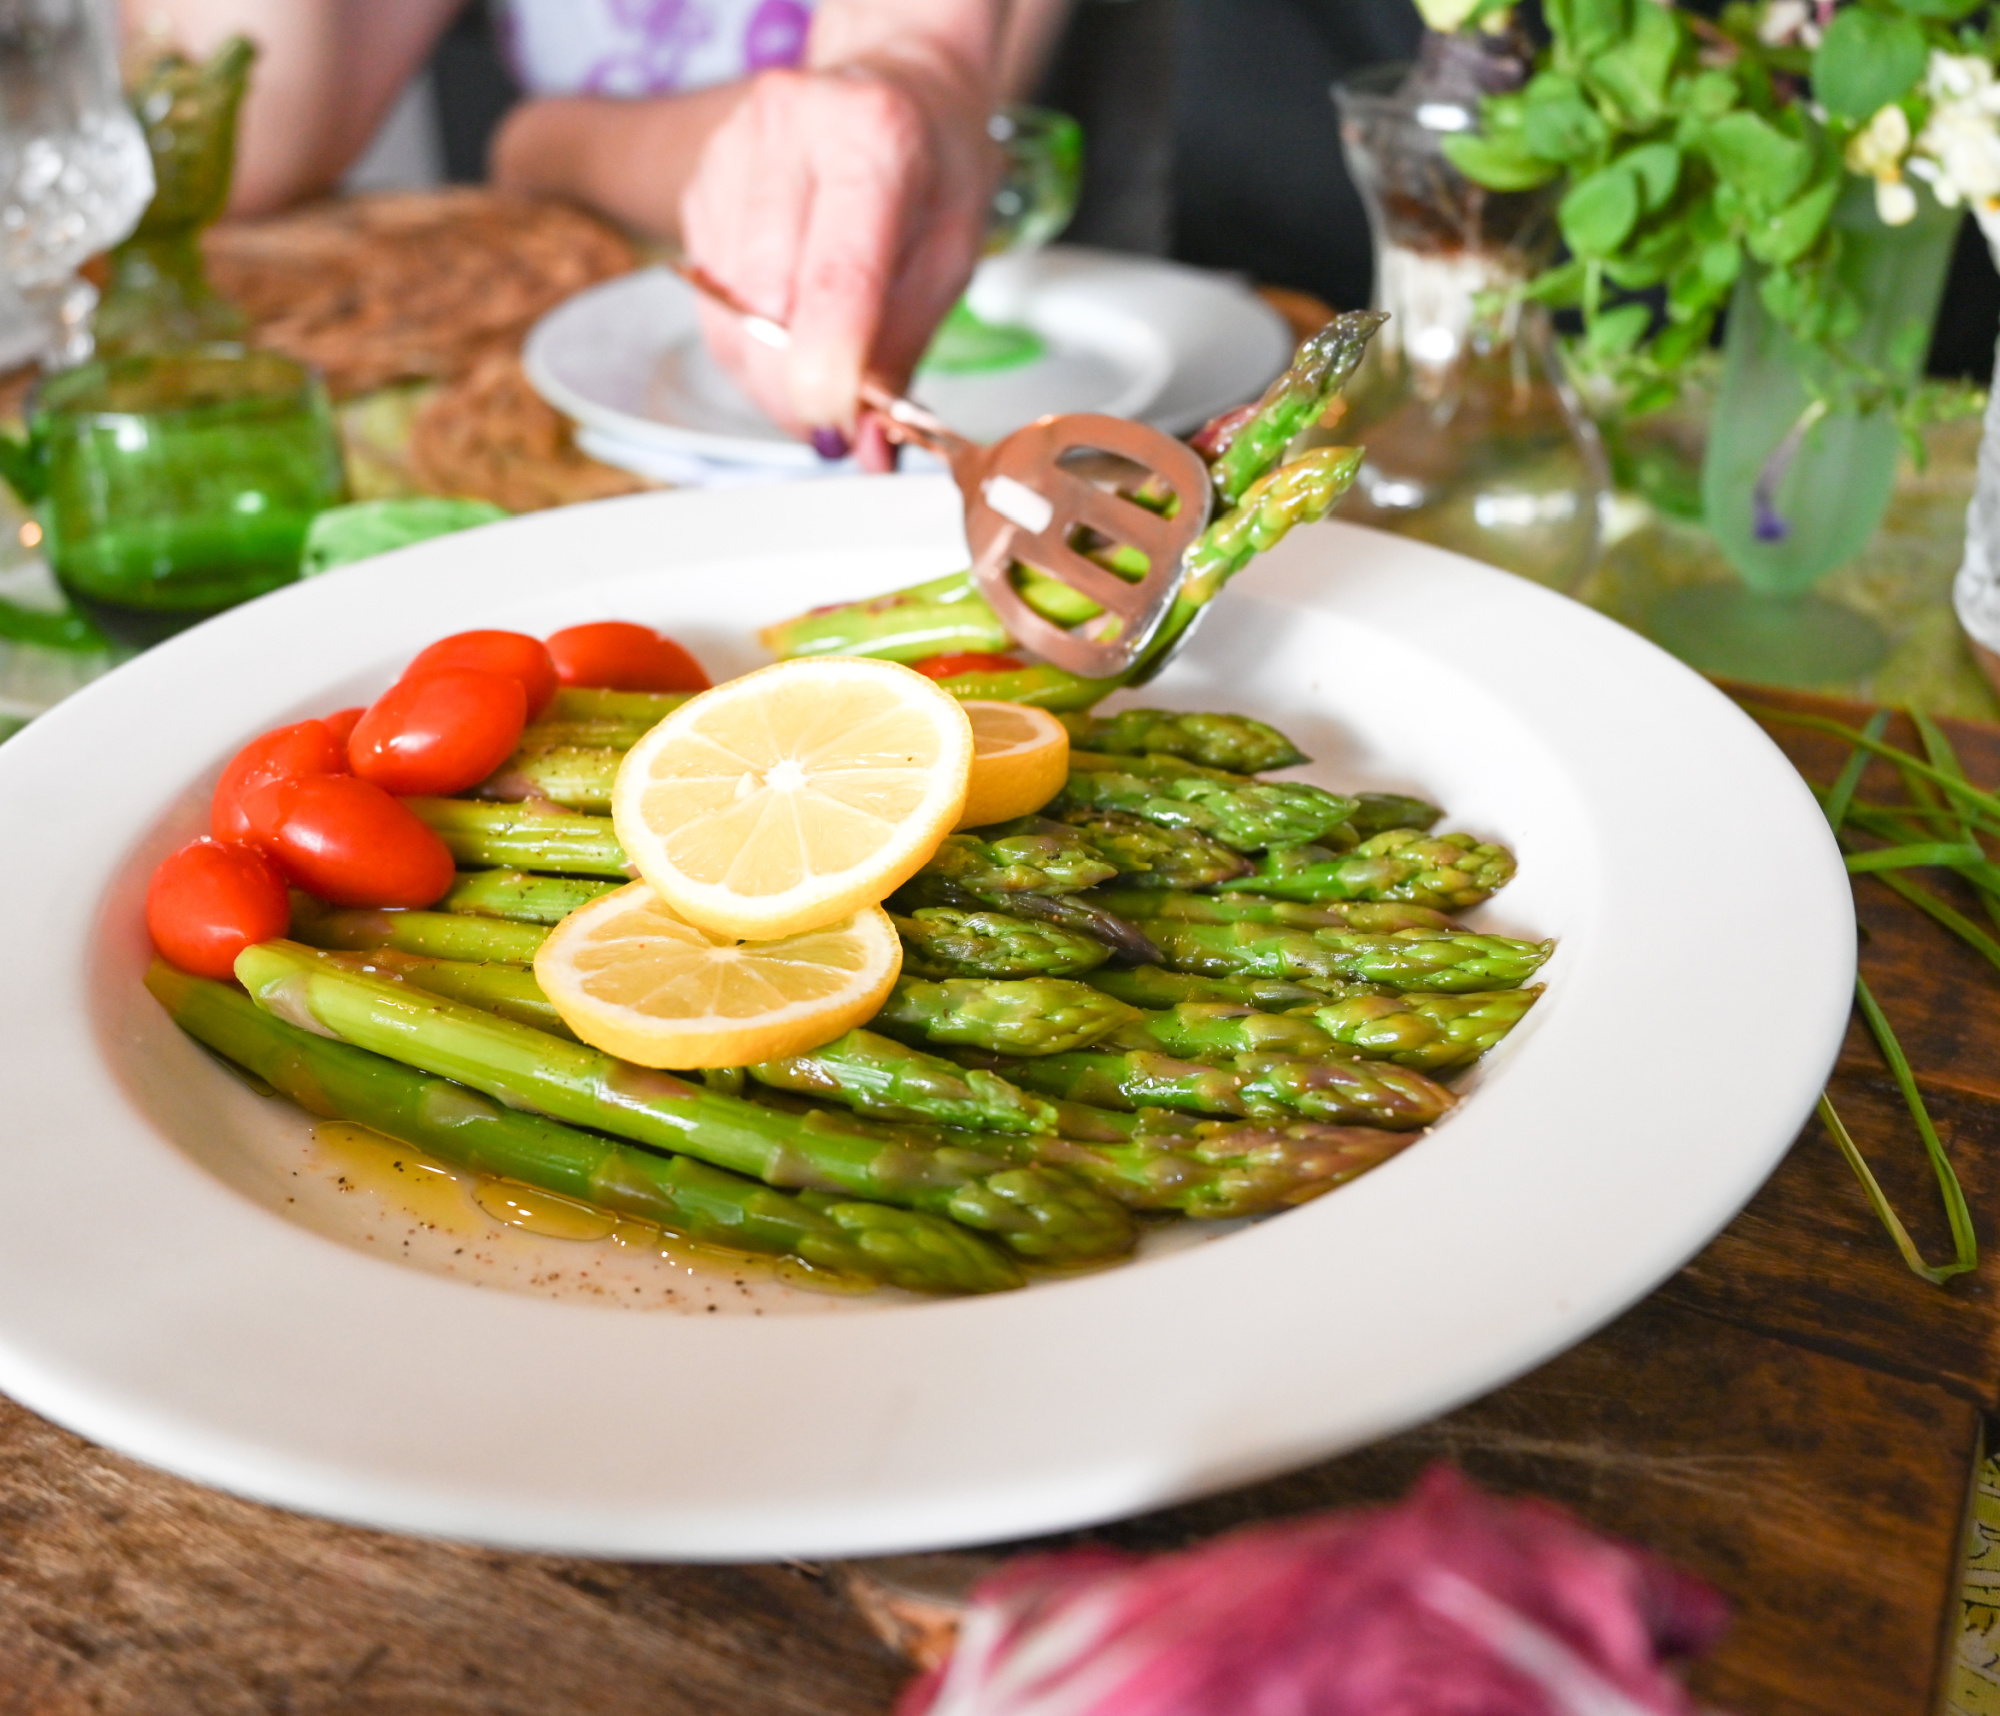 low carb asparagus salad being served with copper salad tongs